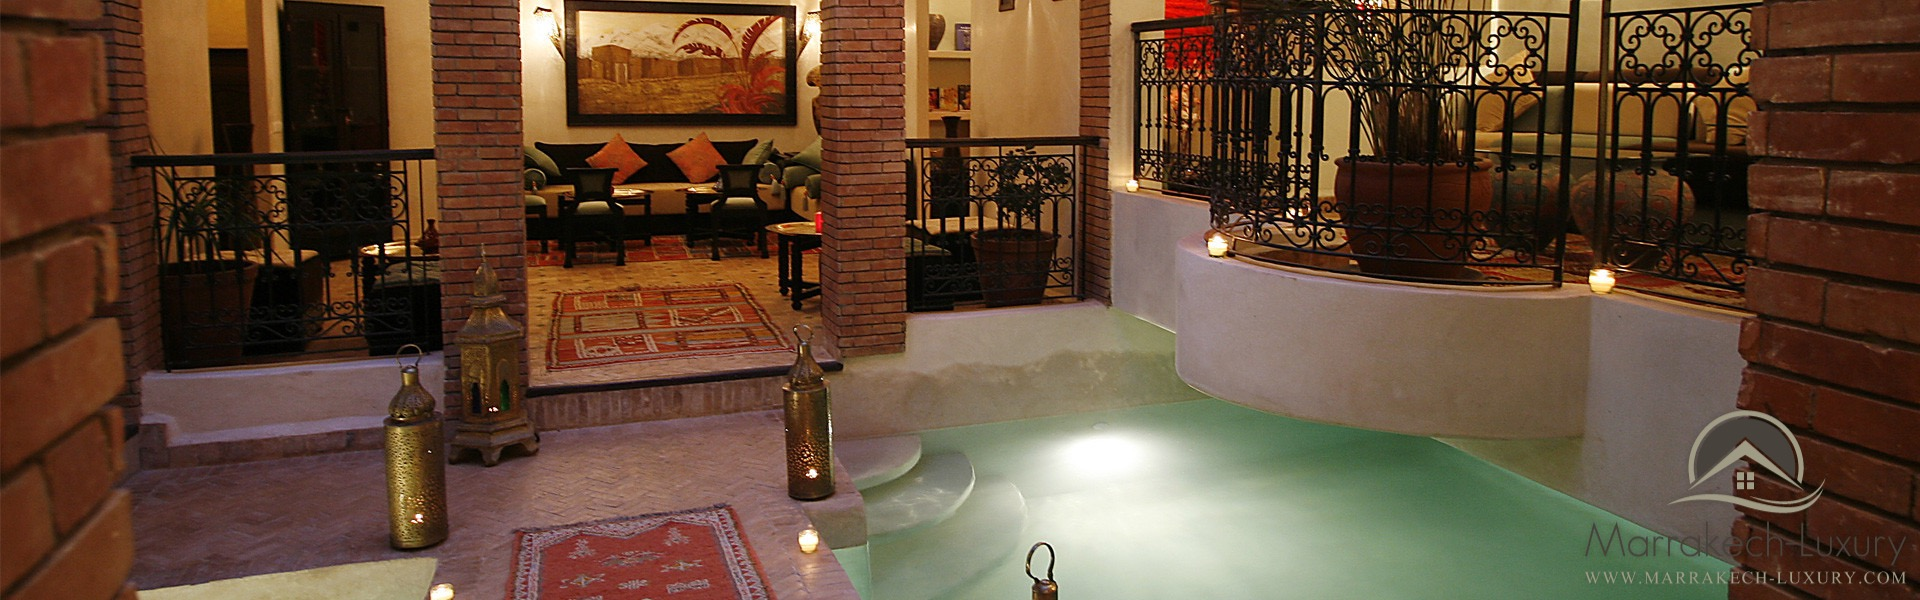 Riaavmed1024 33 agence immobili re marrakech acheter for Agence immobiliere 33